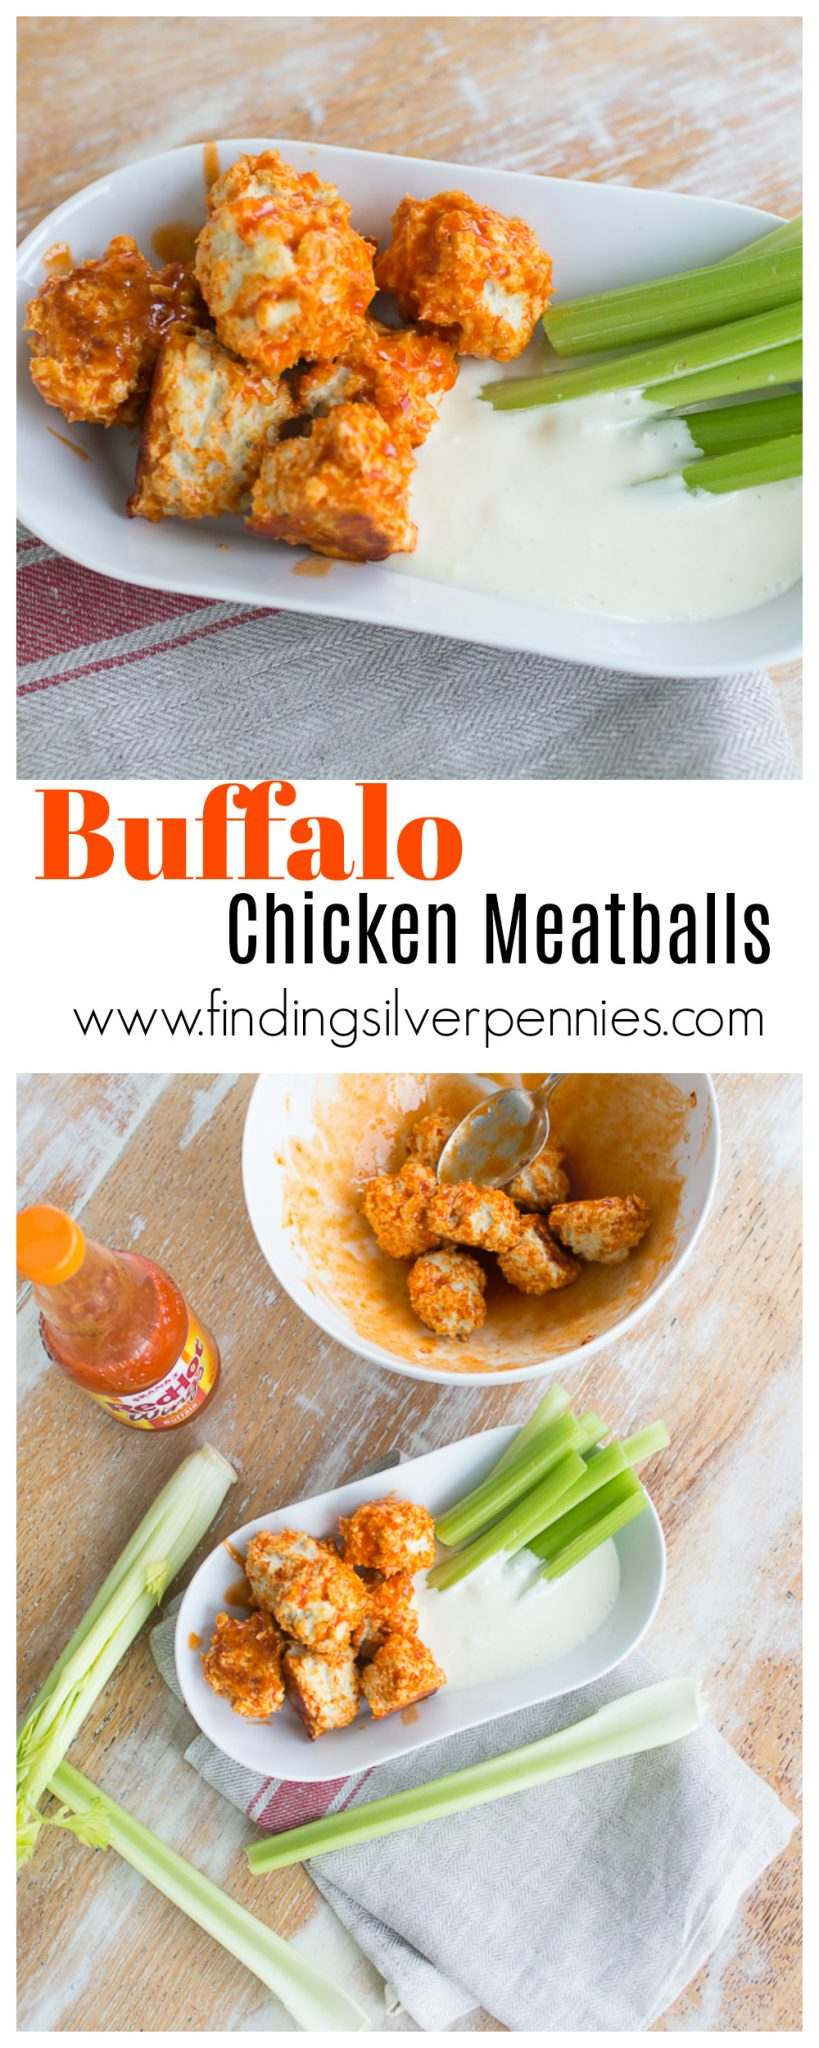 The Best Buffalo Chicken Meatballs - Finding Silver Pennies